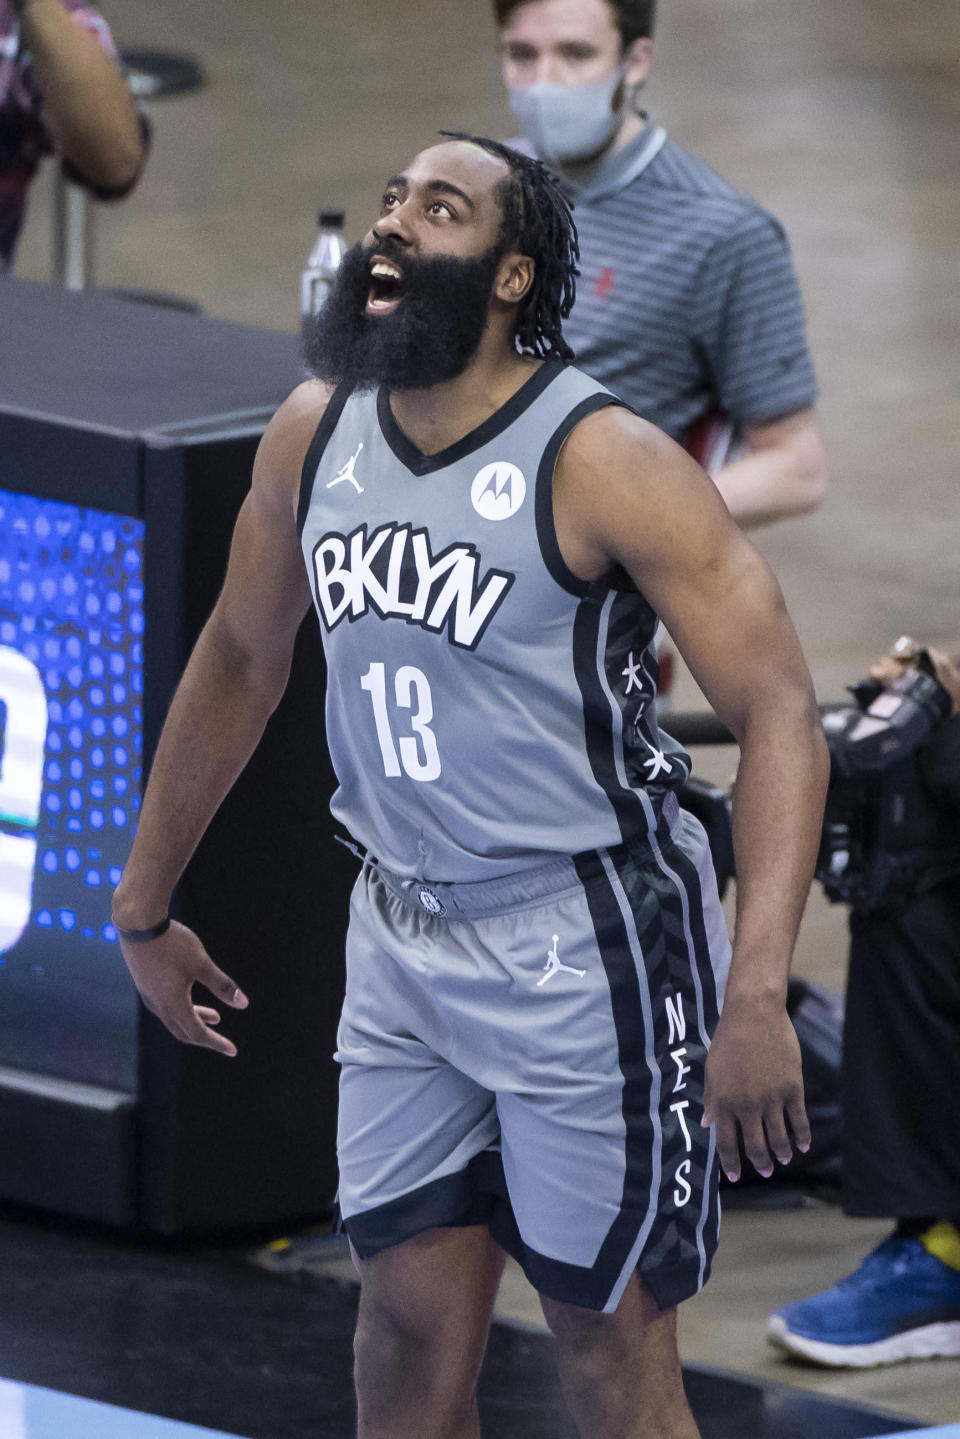 Brooklyn Nets guard James Harden (13) warms up before the first half of an NBA basketball game against the Houston Rockets Wednesday, March 3, 2021, in Houston. (Mark Mulligan/Houston Chronicle via AP)